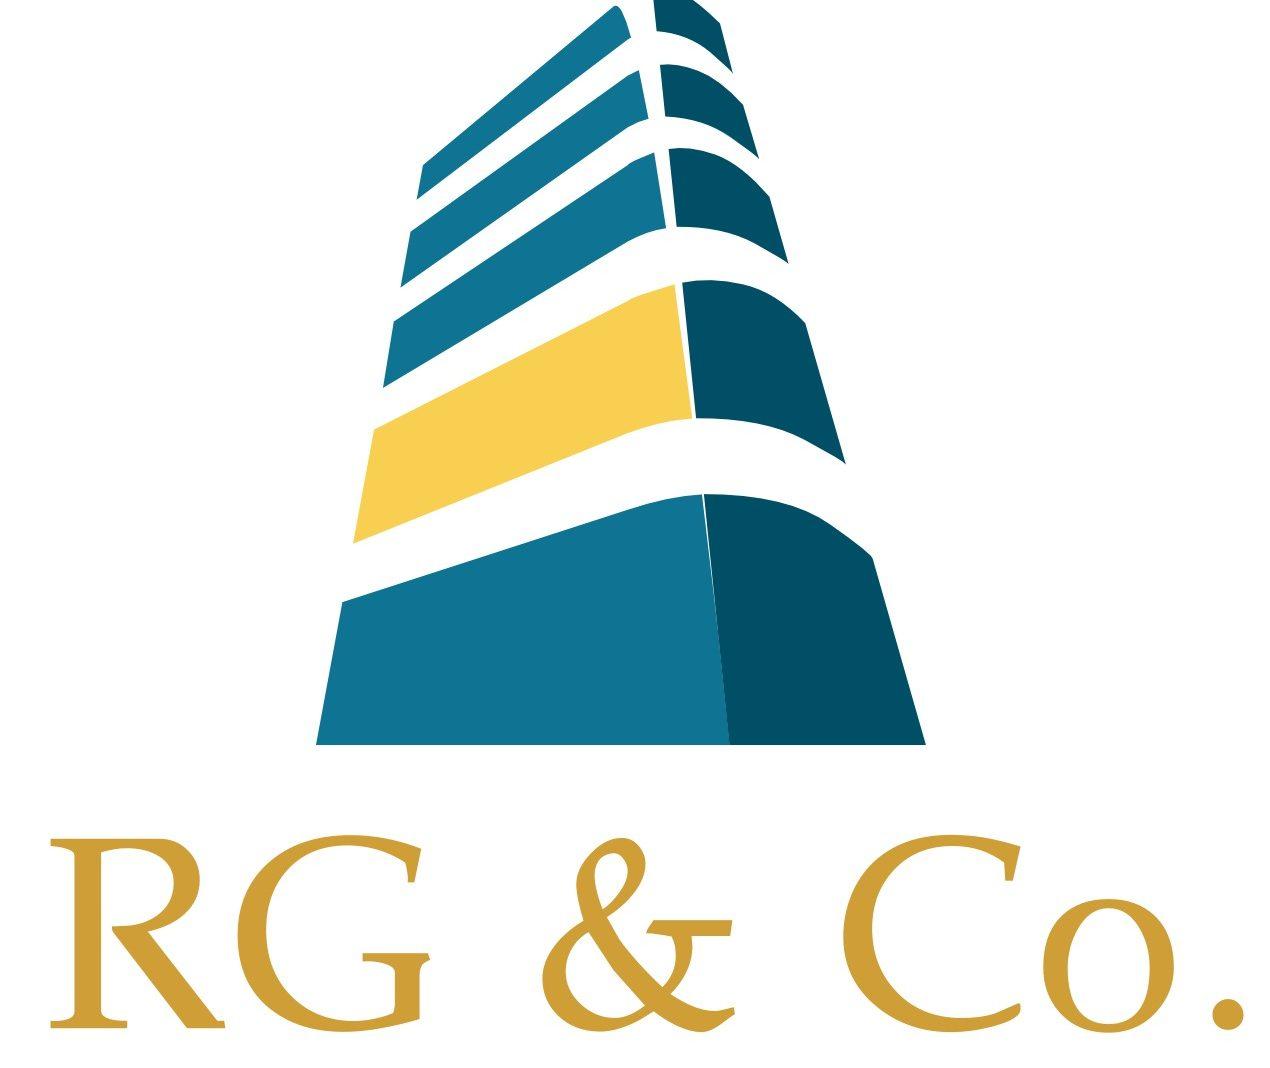 Rogers-Graham & Co.